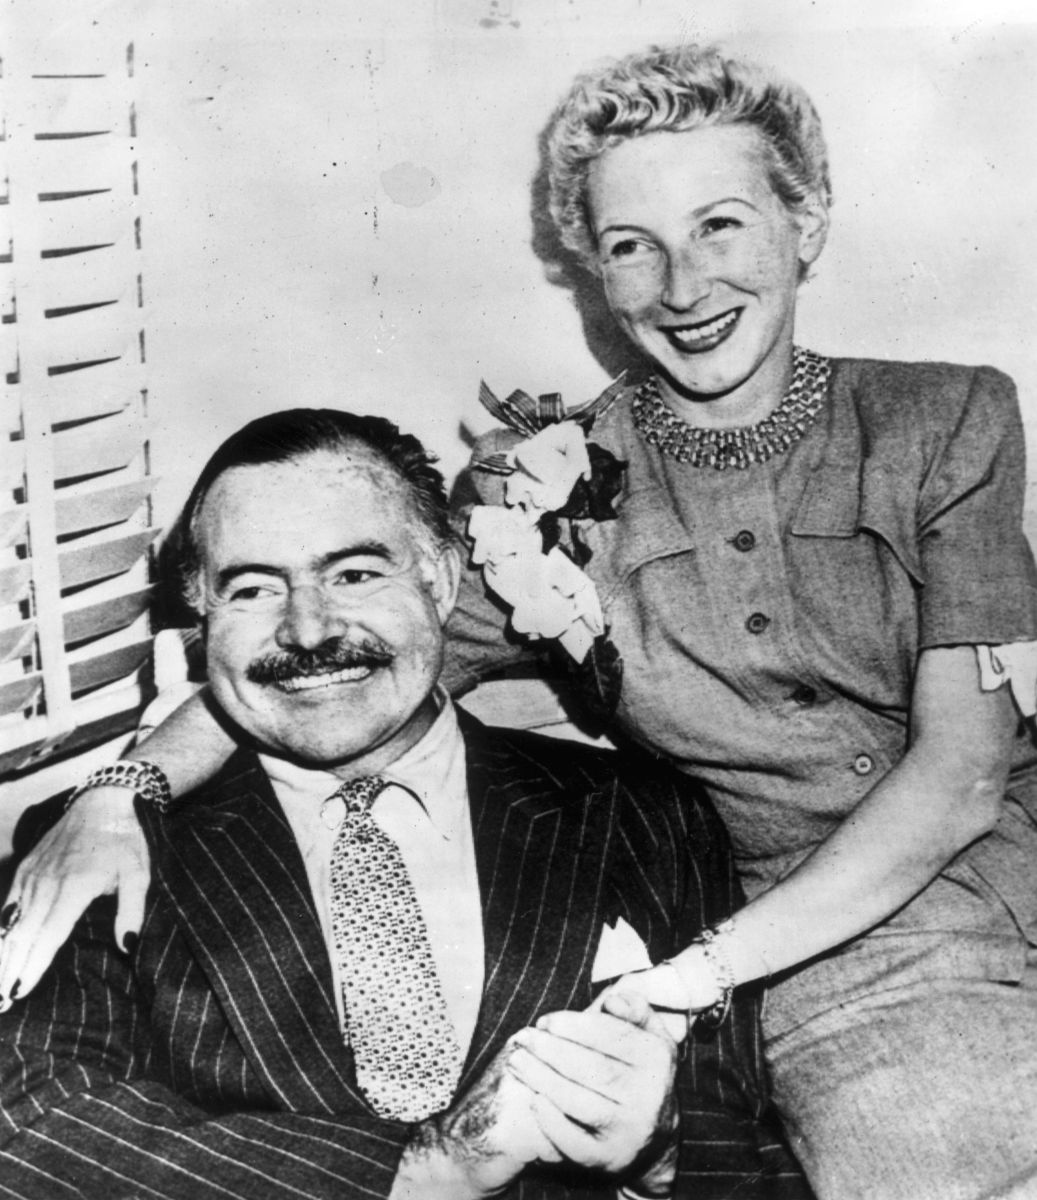 Ernest Hemingway and Mary Welsh